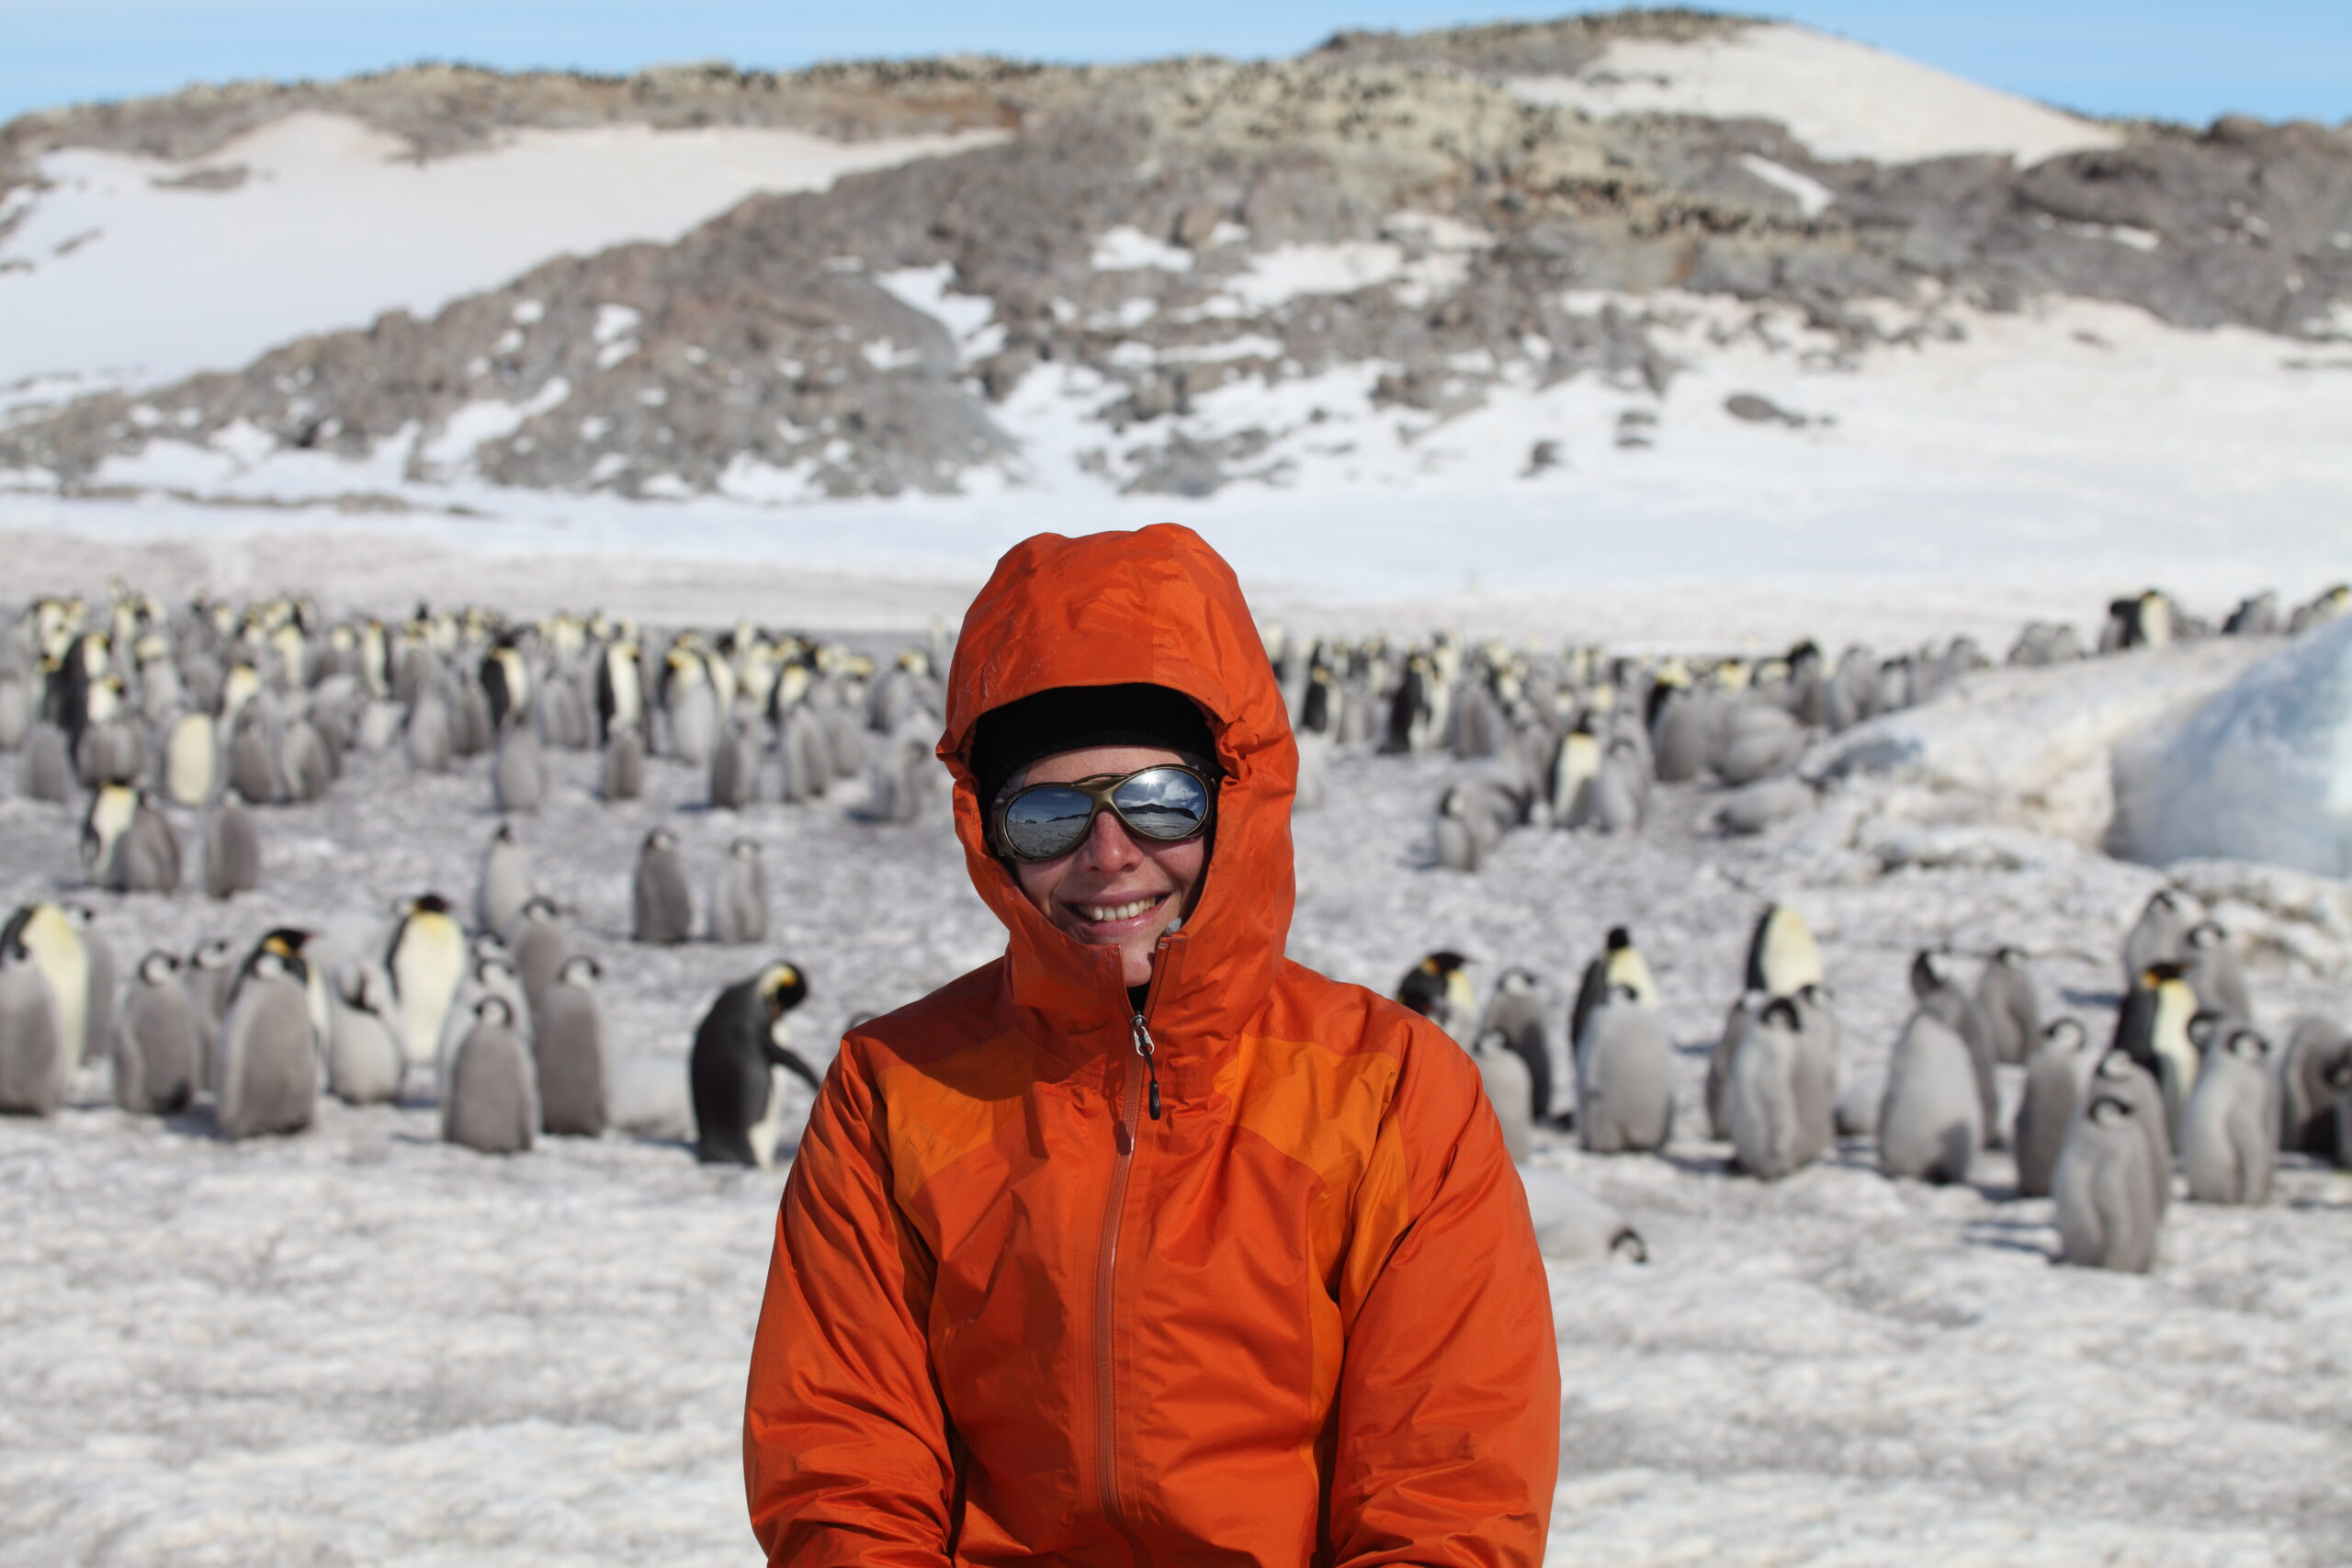 Stephanie Jenouvrier has been studying emperor penguins for decades. Her latest paper shows that the birds face a dire future if greenhouse gas emissions continue to be emitted at current rates. Photo Courtesy of Stephanie Jenouvrier © Woods Hole Oceanographic Institution